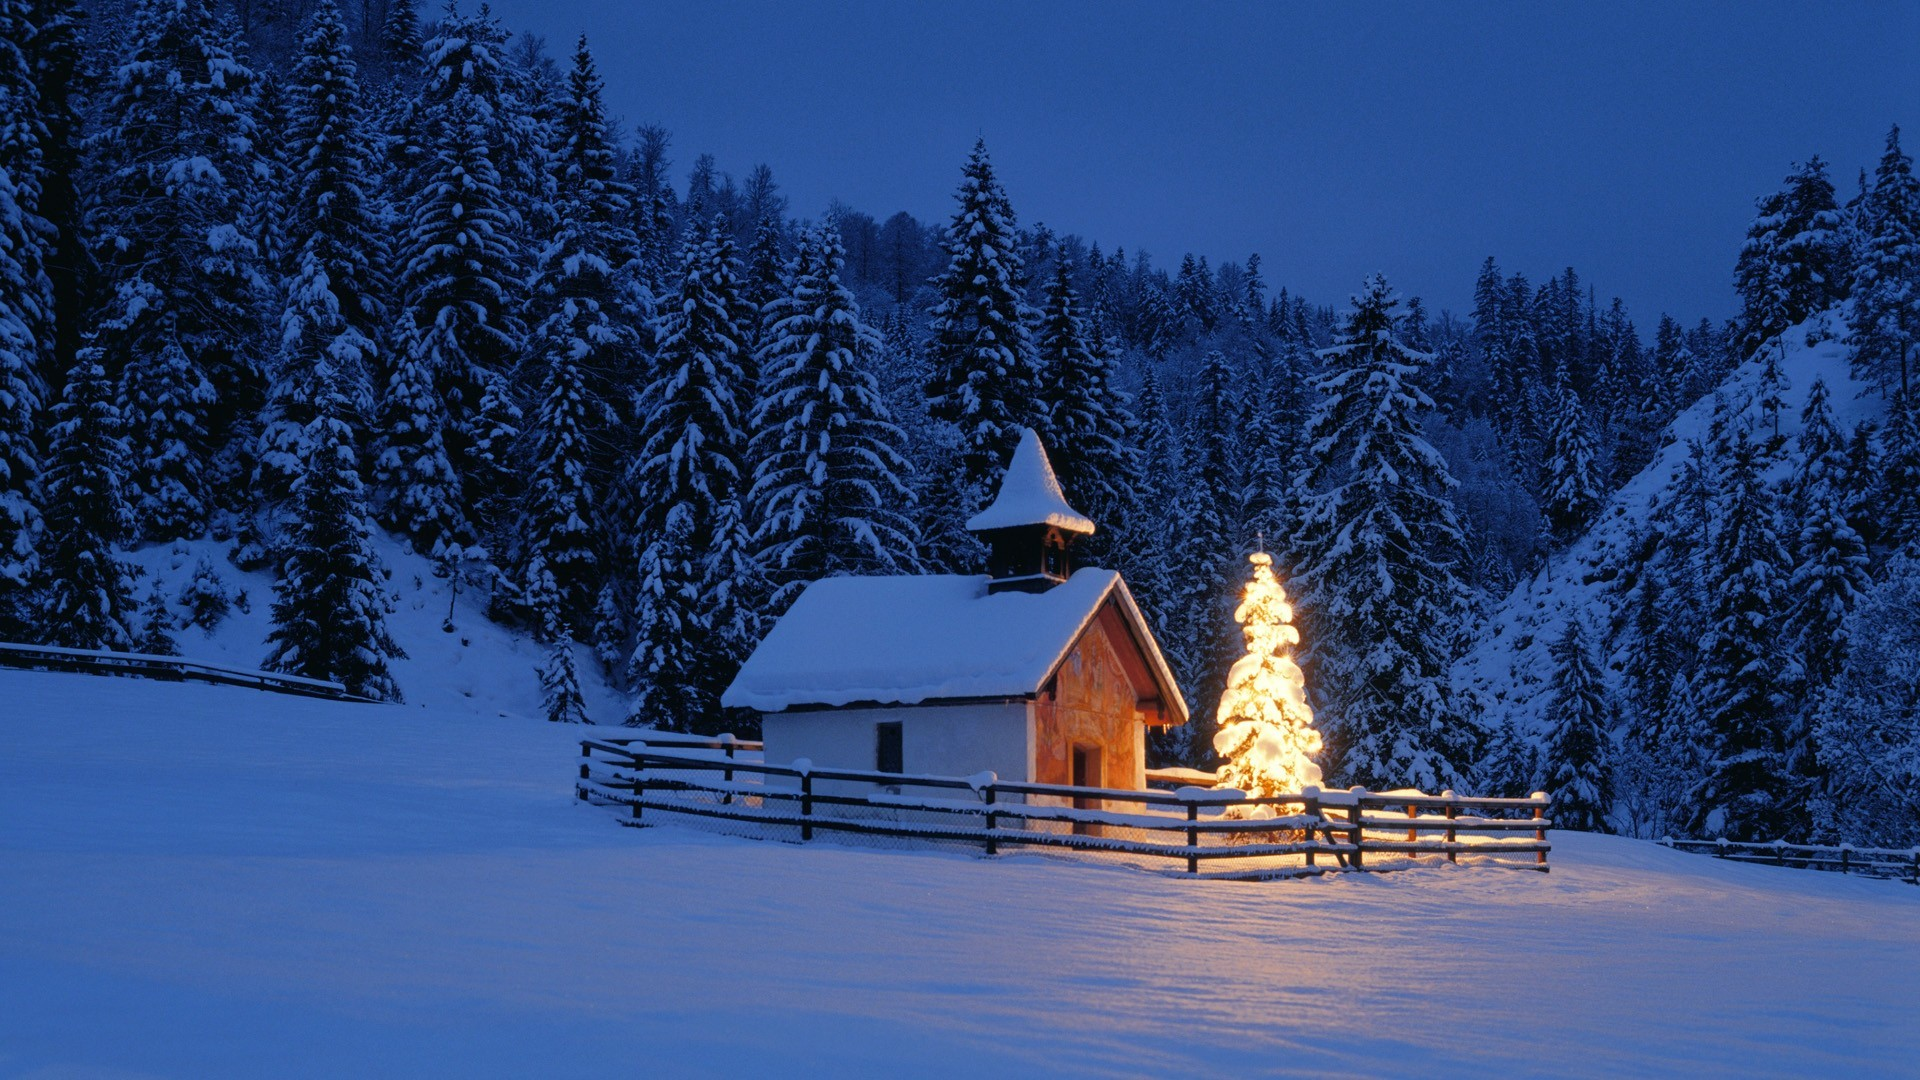 Winter Snow Pictures Wallpaper 49 Images